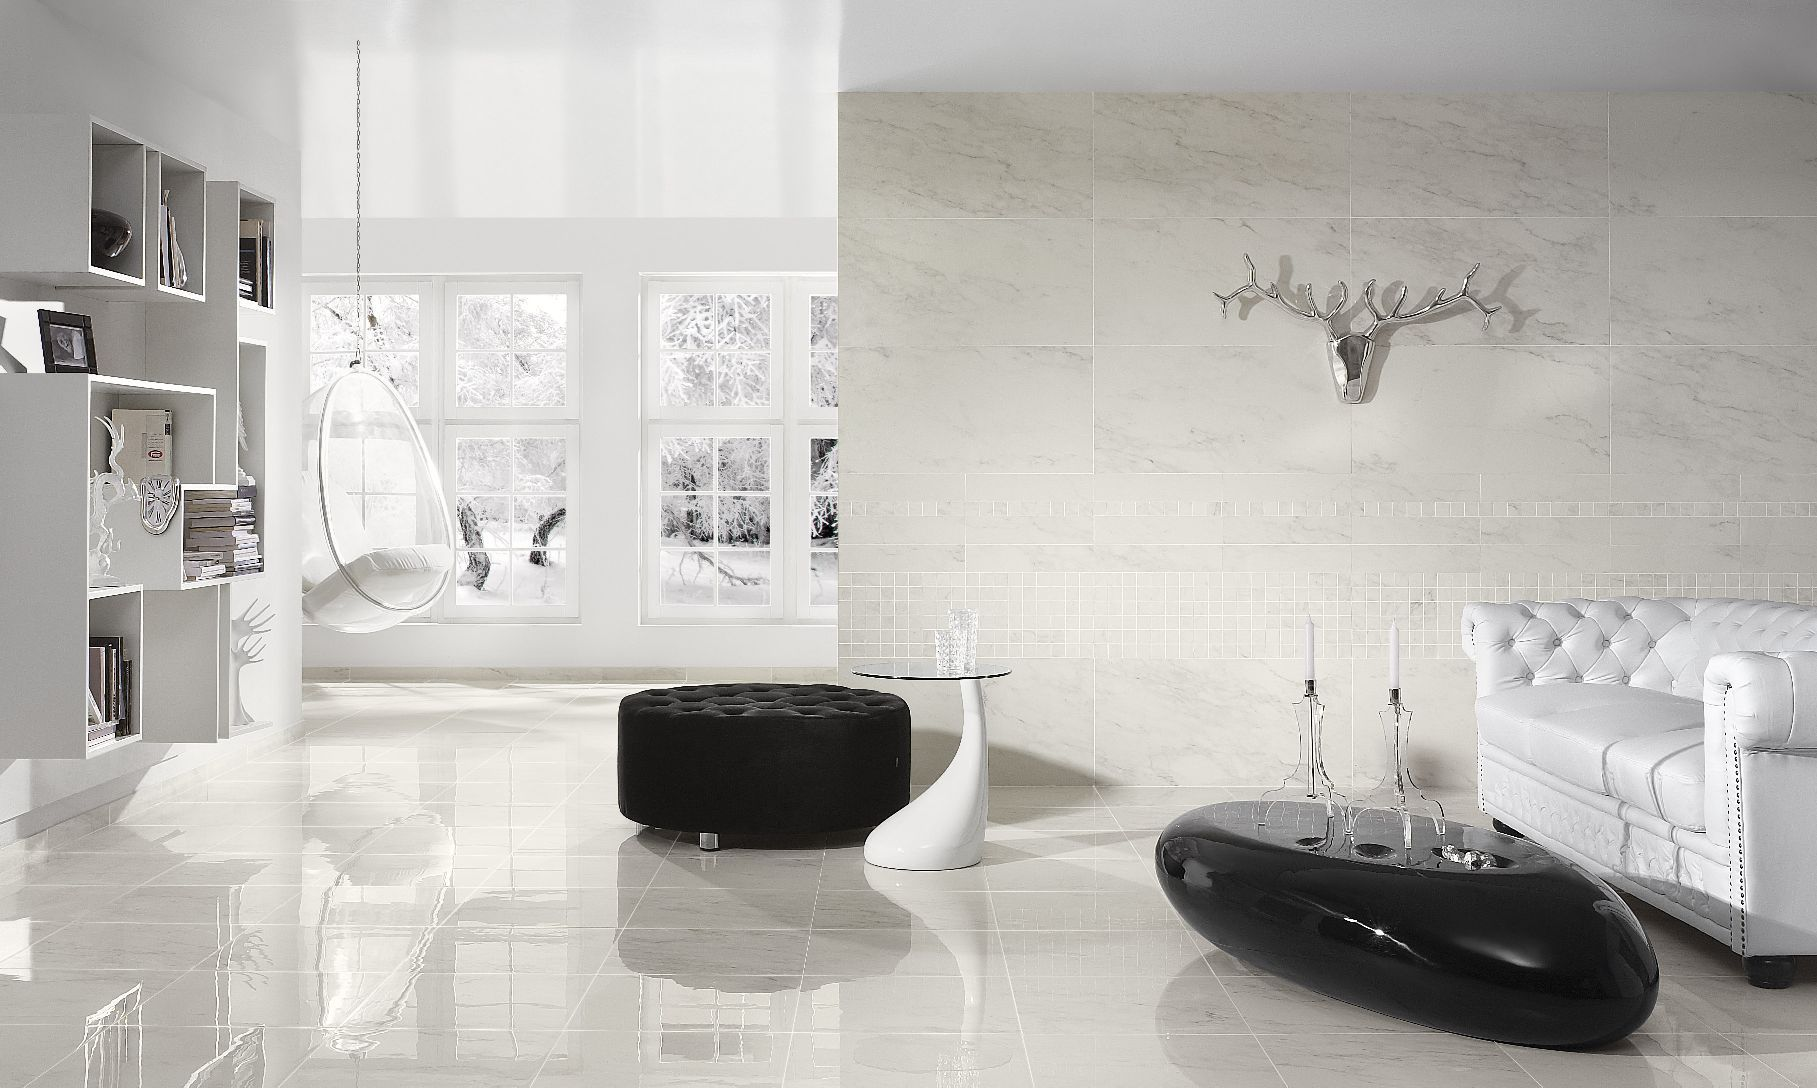 Luxury living room with white ceramic tiles flooring mimar luxury living room with white ceramic tiles flooring dailygadgetfo Image collections